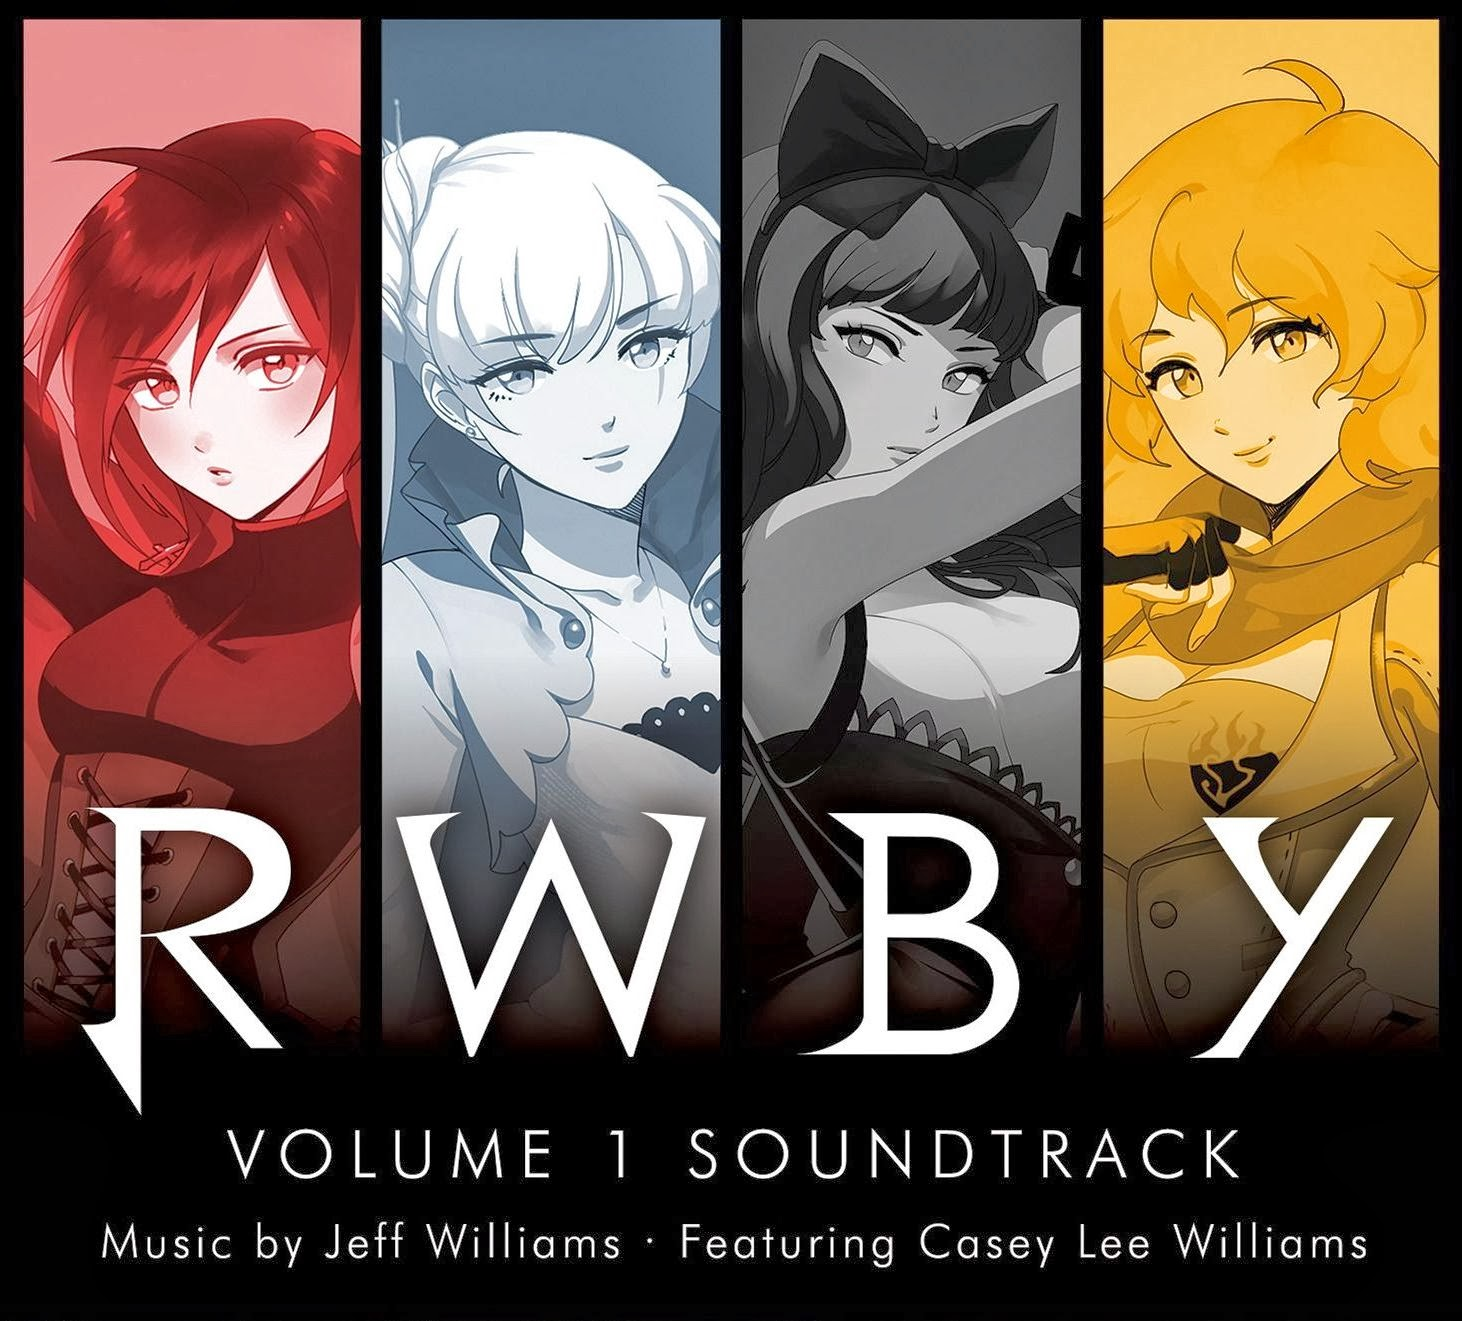 5 additionally Rwby Season 3 Chapter 1 in addition RWBY Accident Happens 583678142 also Ruby Rose Volume 4 Version 619781246 moreover Monty Rerigging characters. on rwby vol 4 concept art